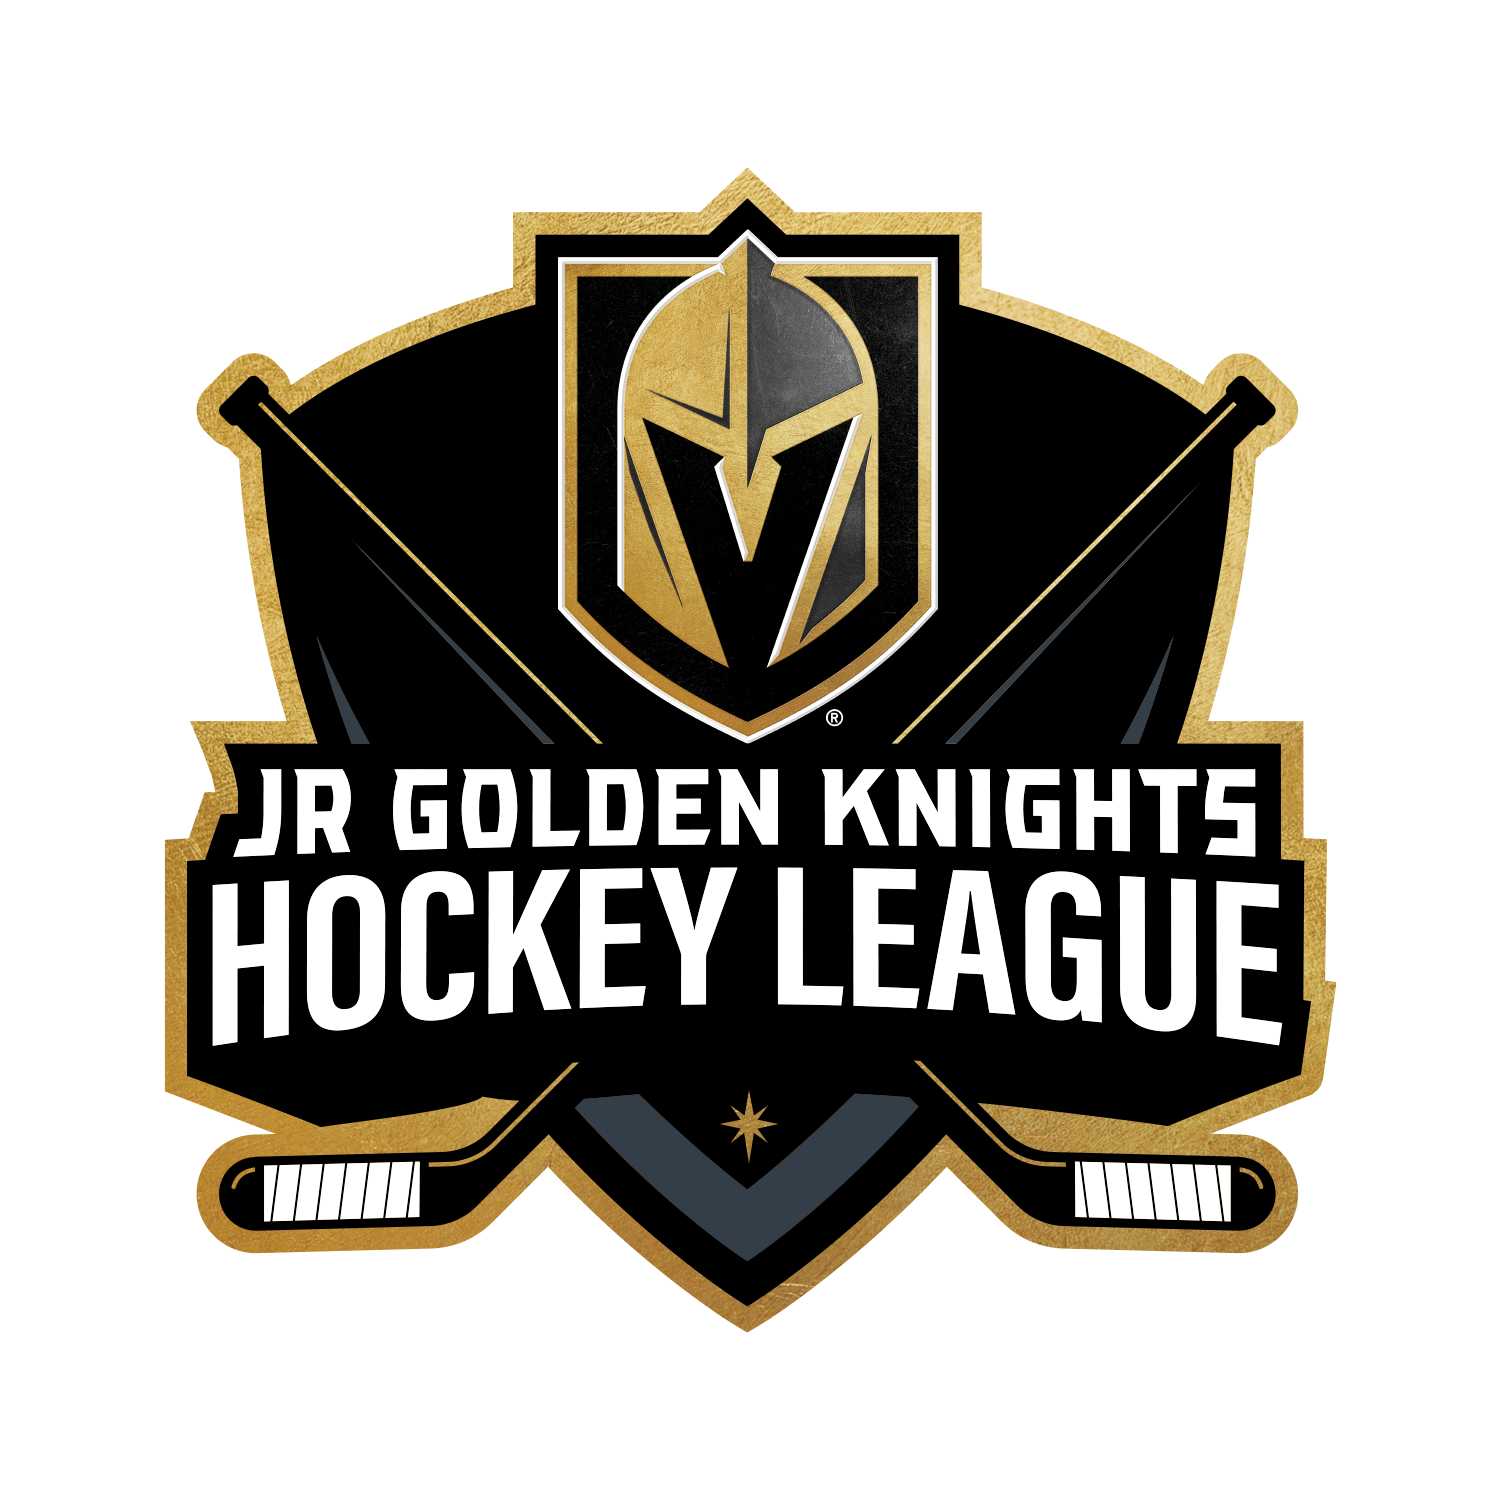 Jr Golden Knights Hockey League logo